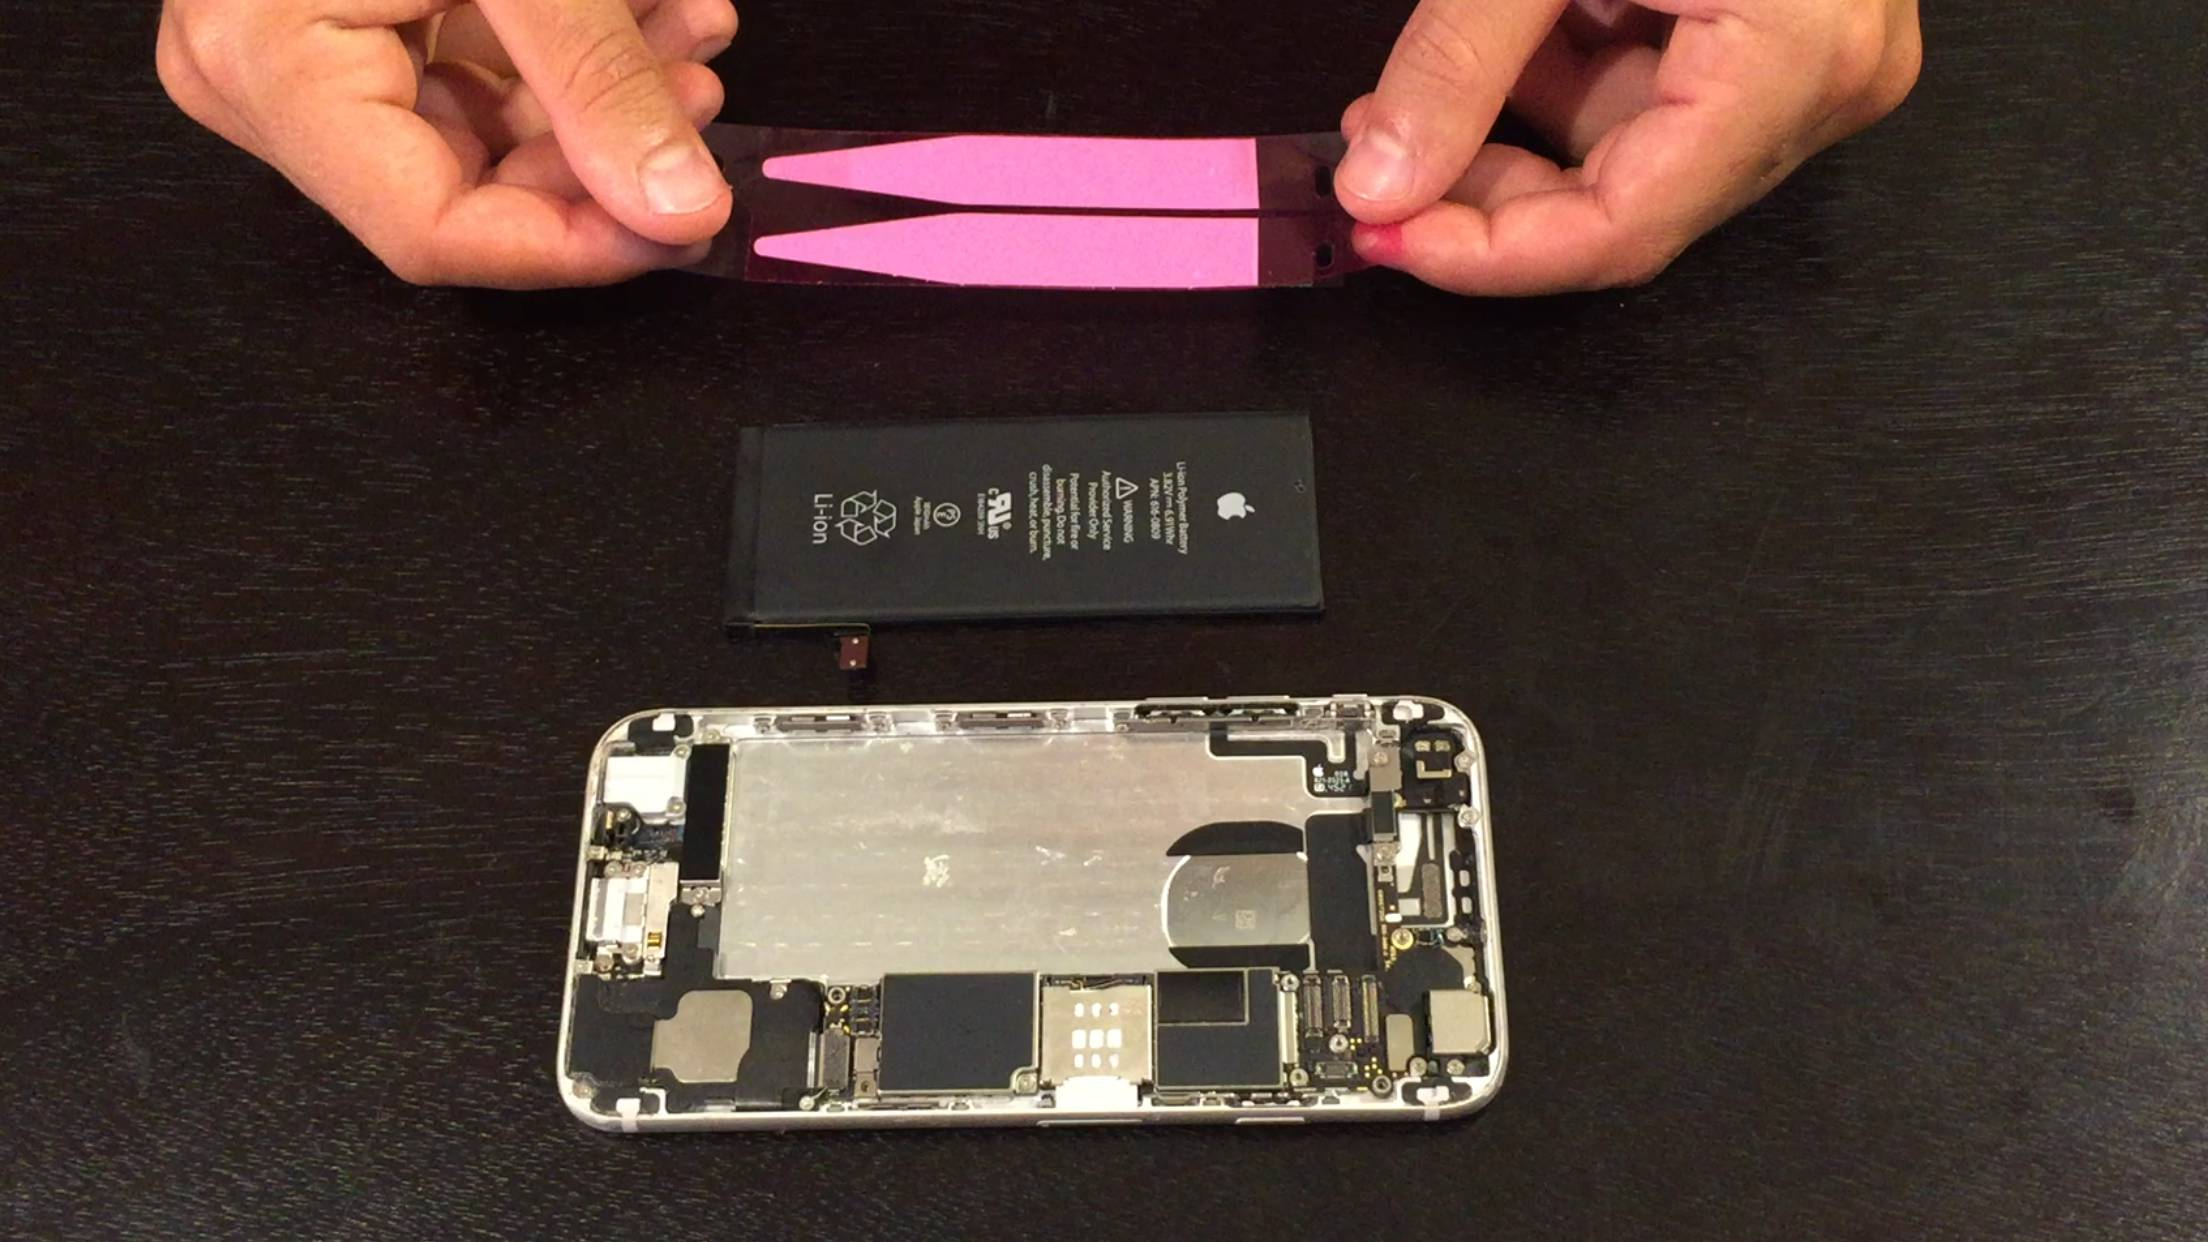 iPhone 6/6+ battery replacement guide - Installing new adhesive - 1